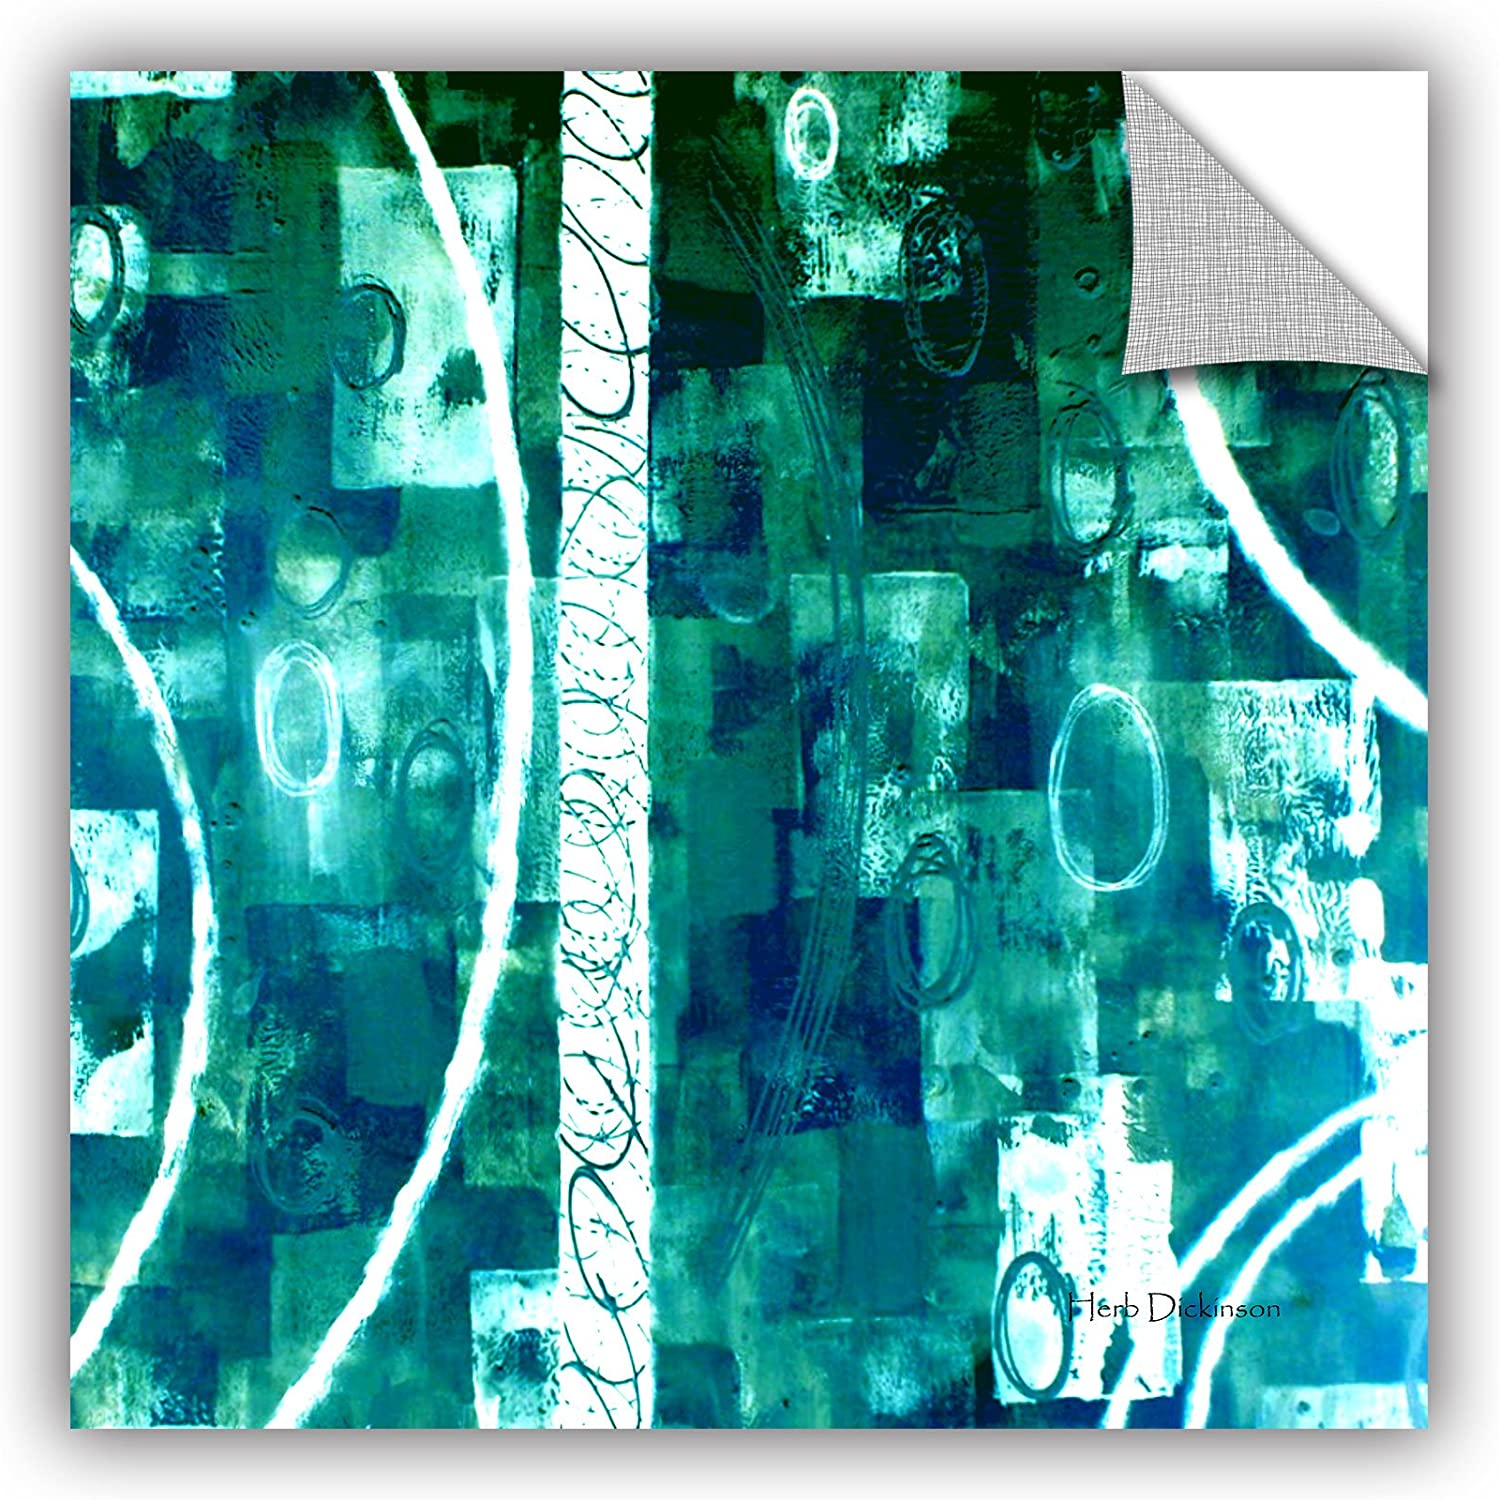 Art Wall Herb Dickinson's Process Art Appeelz Removable Graphic Wall Art, 18 by 18Inch